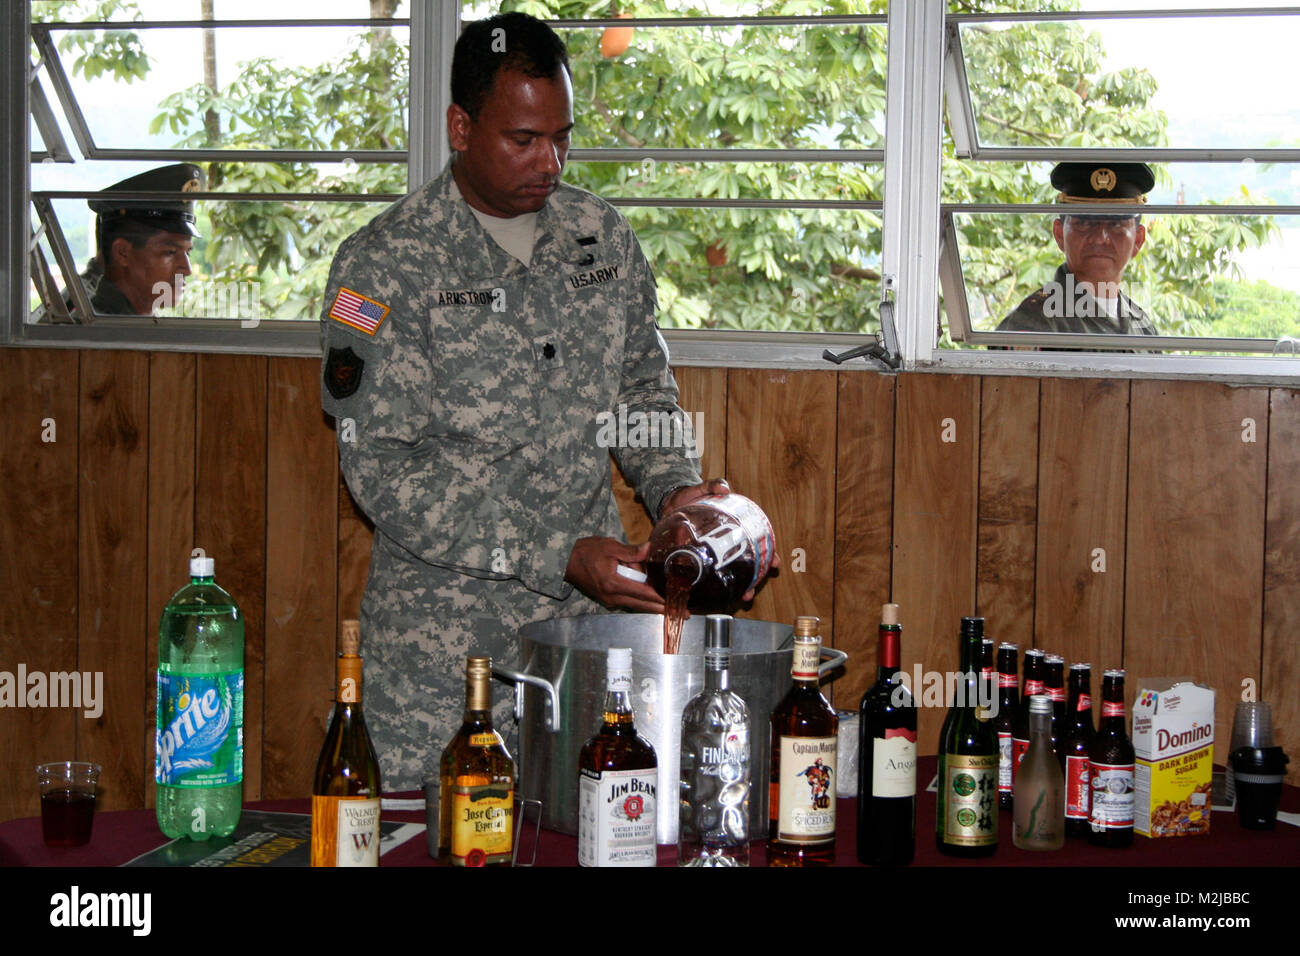 Lt. Col. Armstrong adds an ingredient to the grog bowl during the U.S. Army's 235th birthday celebration in - Stock Image